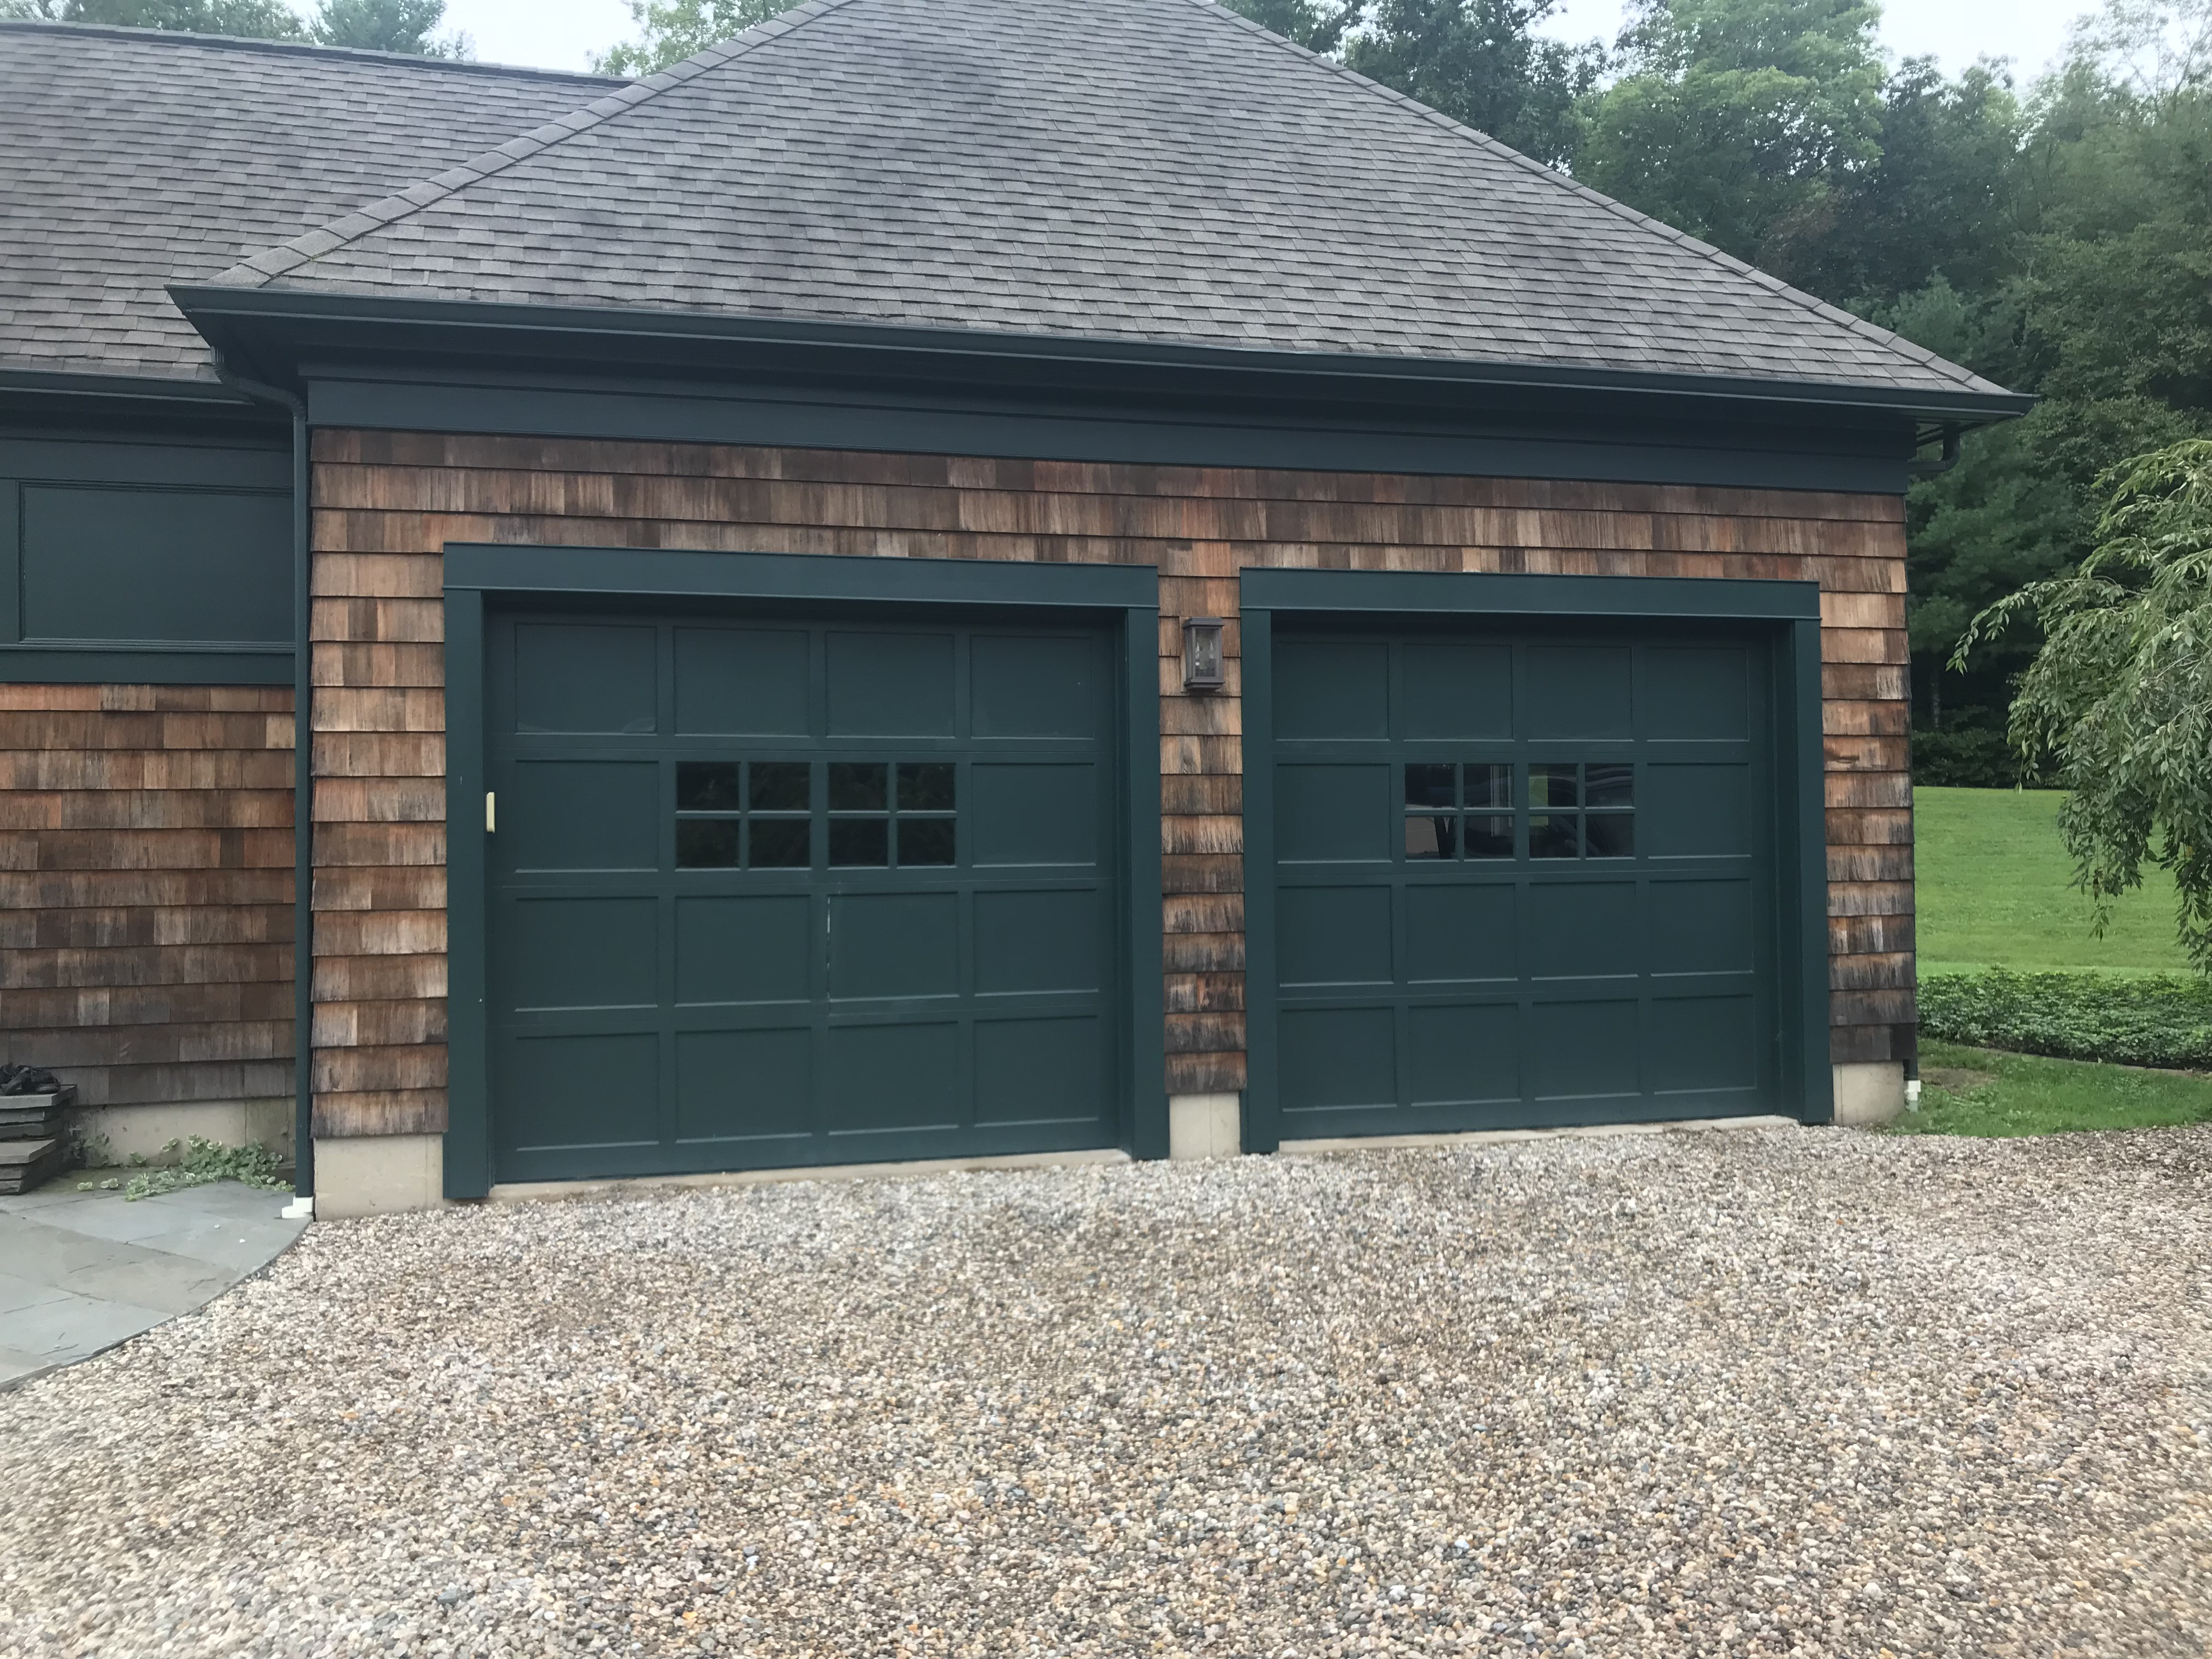 Beautiful garage doors are waiting for your home